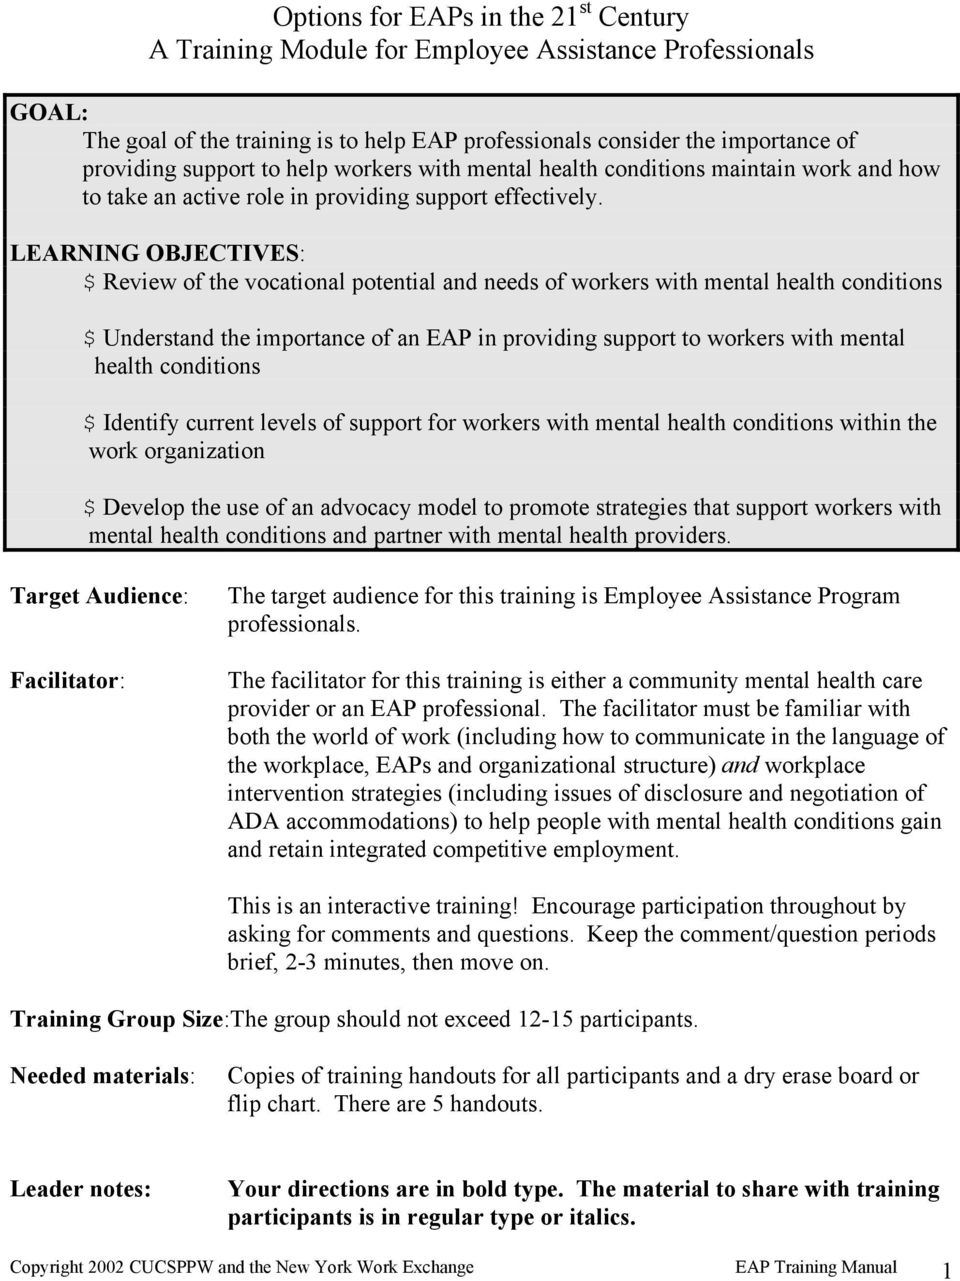 LEARNING OBJECTIVES: $ Review of the vocational potential and needs of workers with mental health conditions $ Understand the importance of an EAP in providing support to workers with mental health